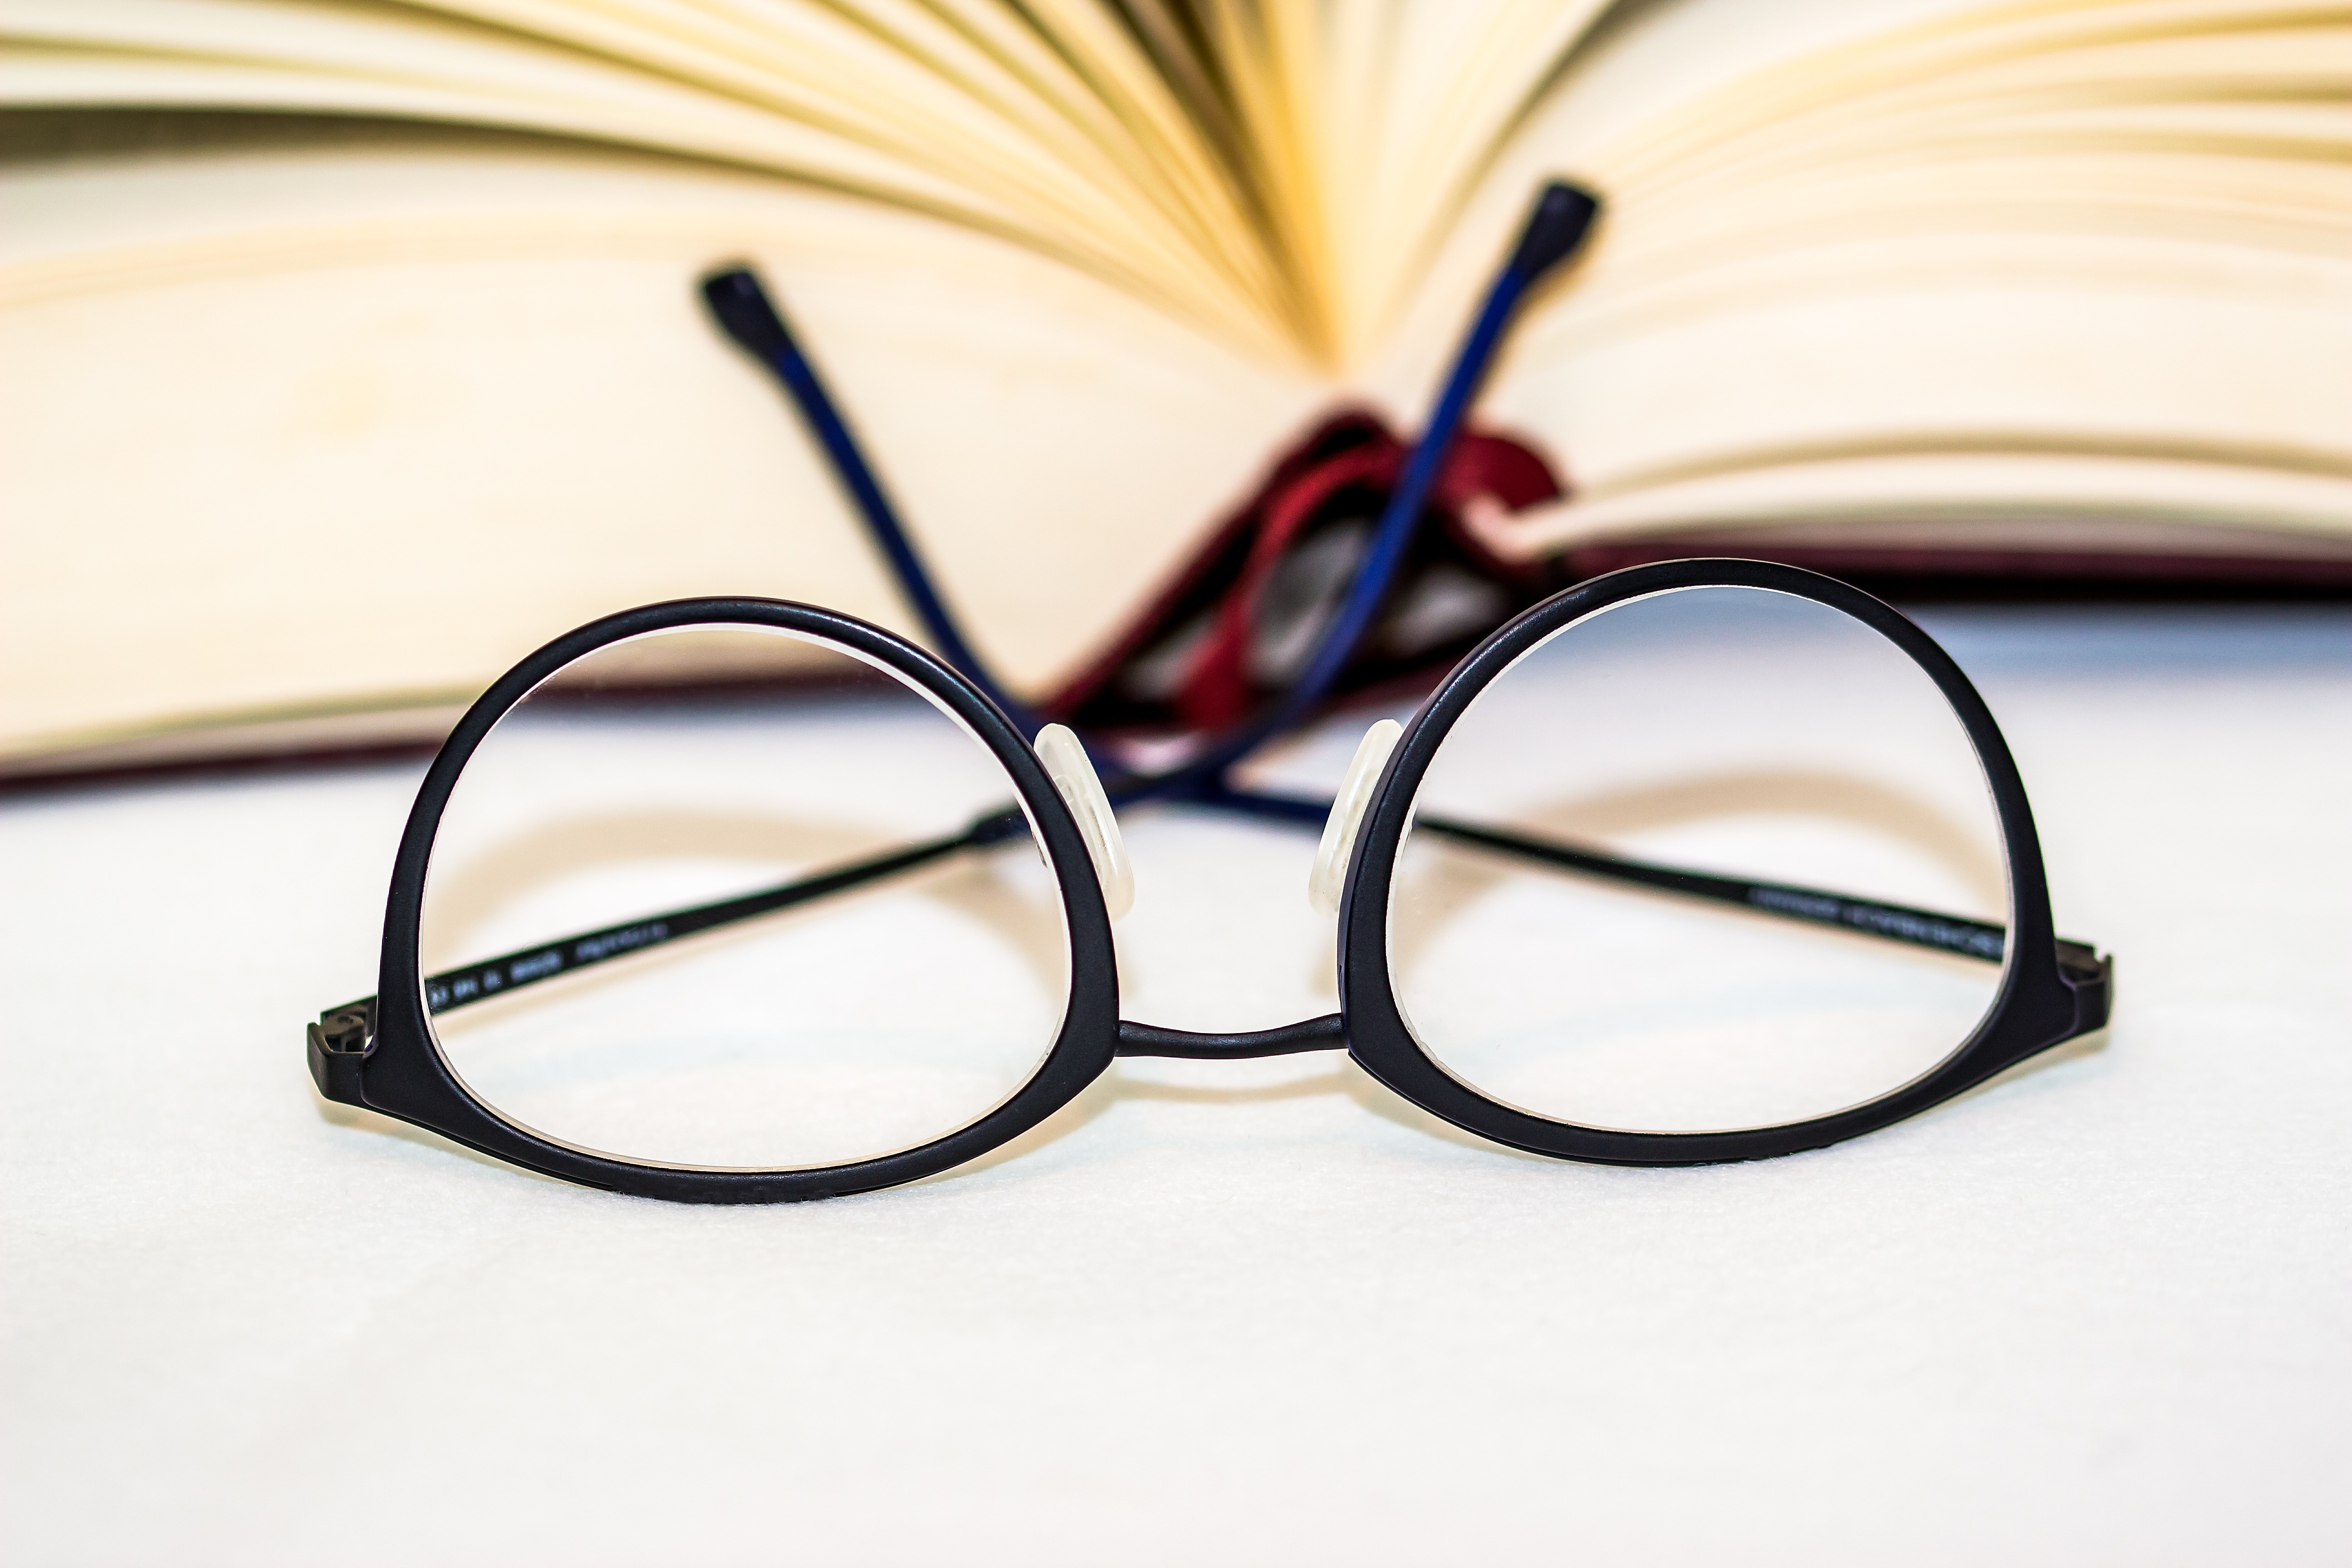 A pair of black glasses rests upside in front of a book